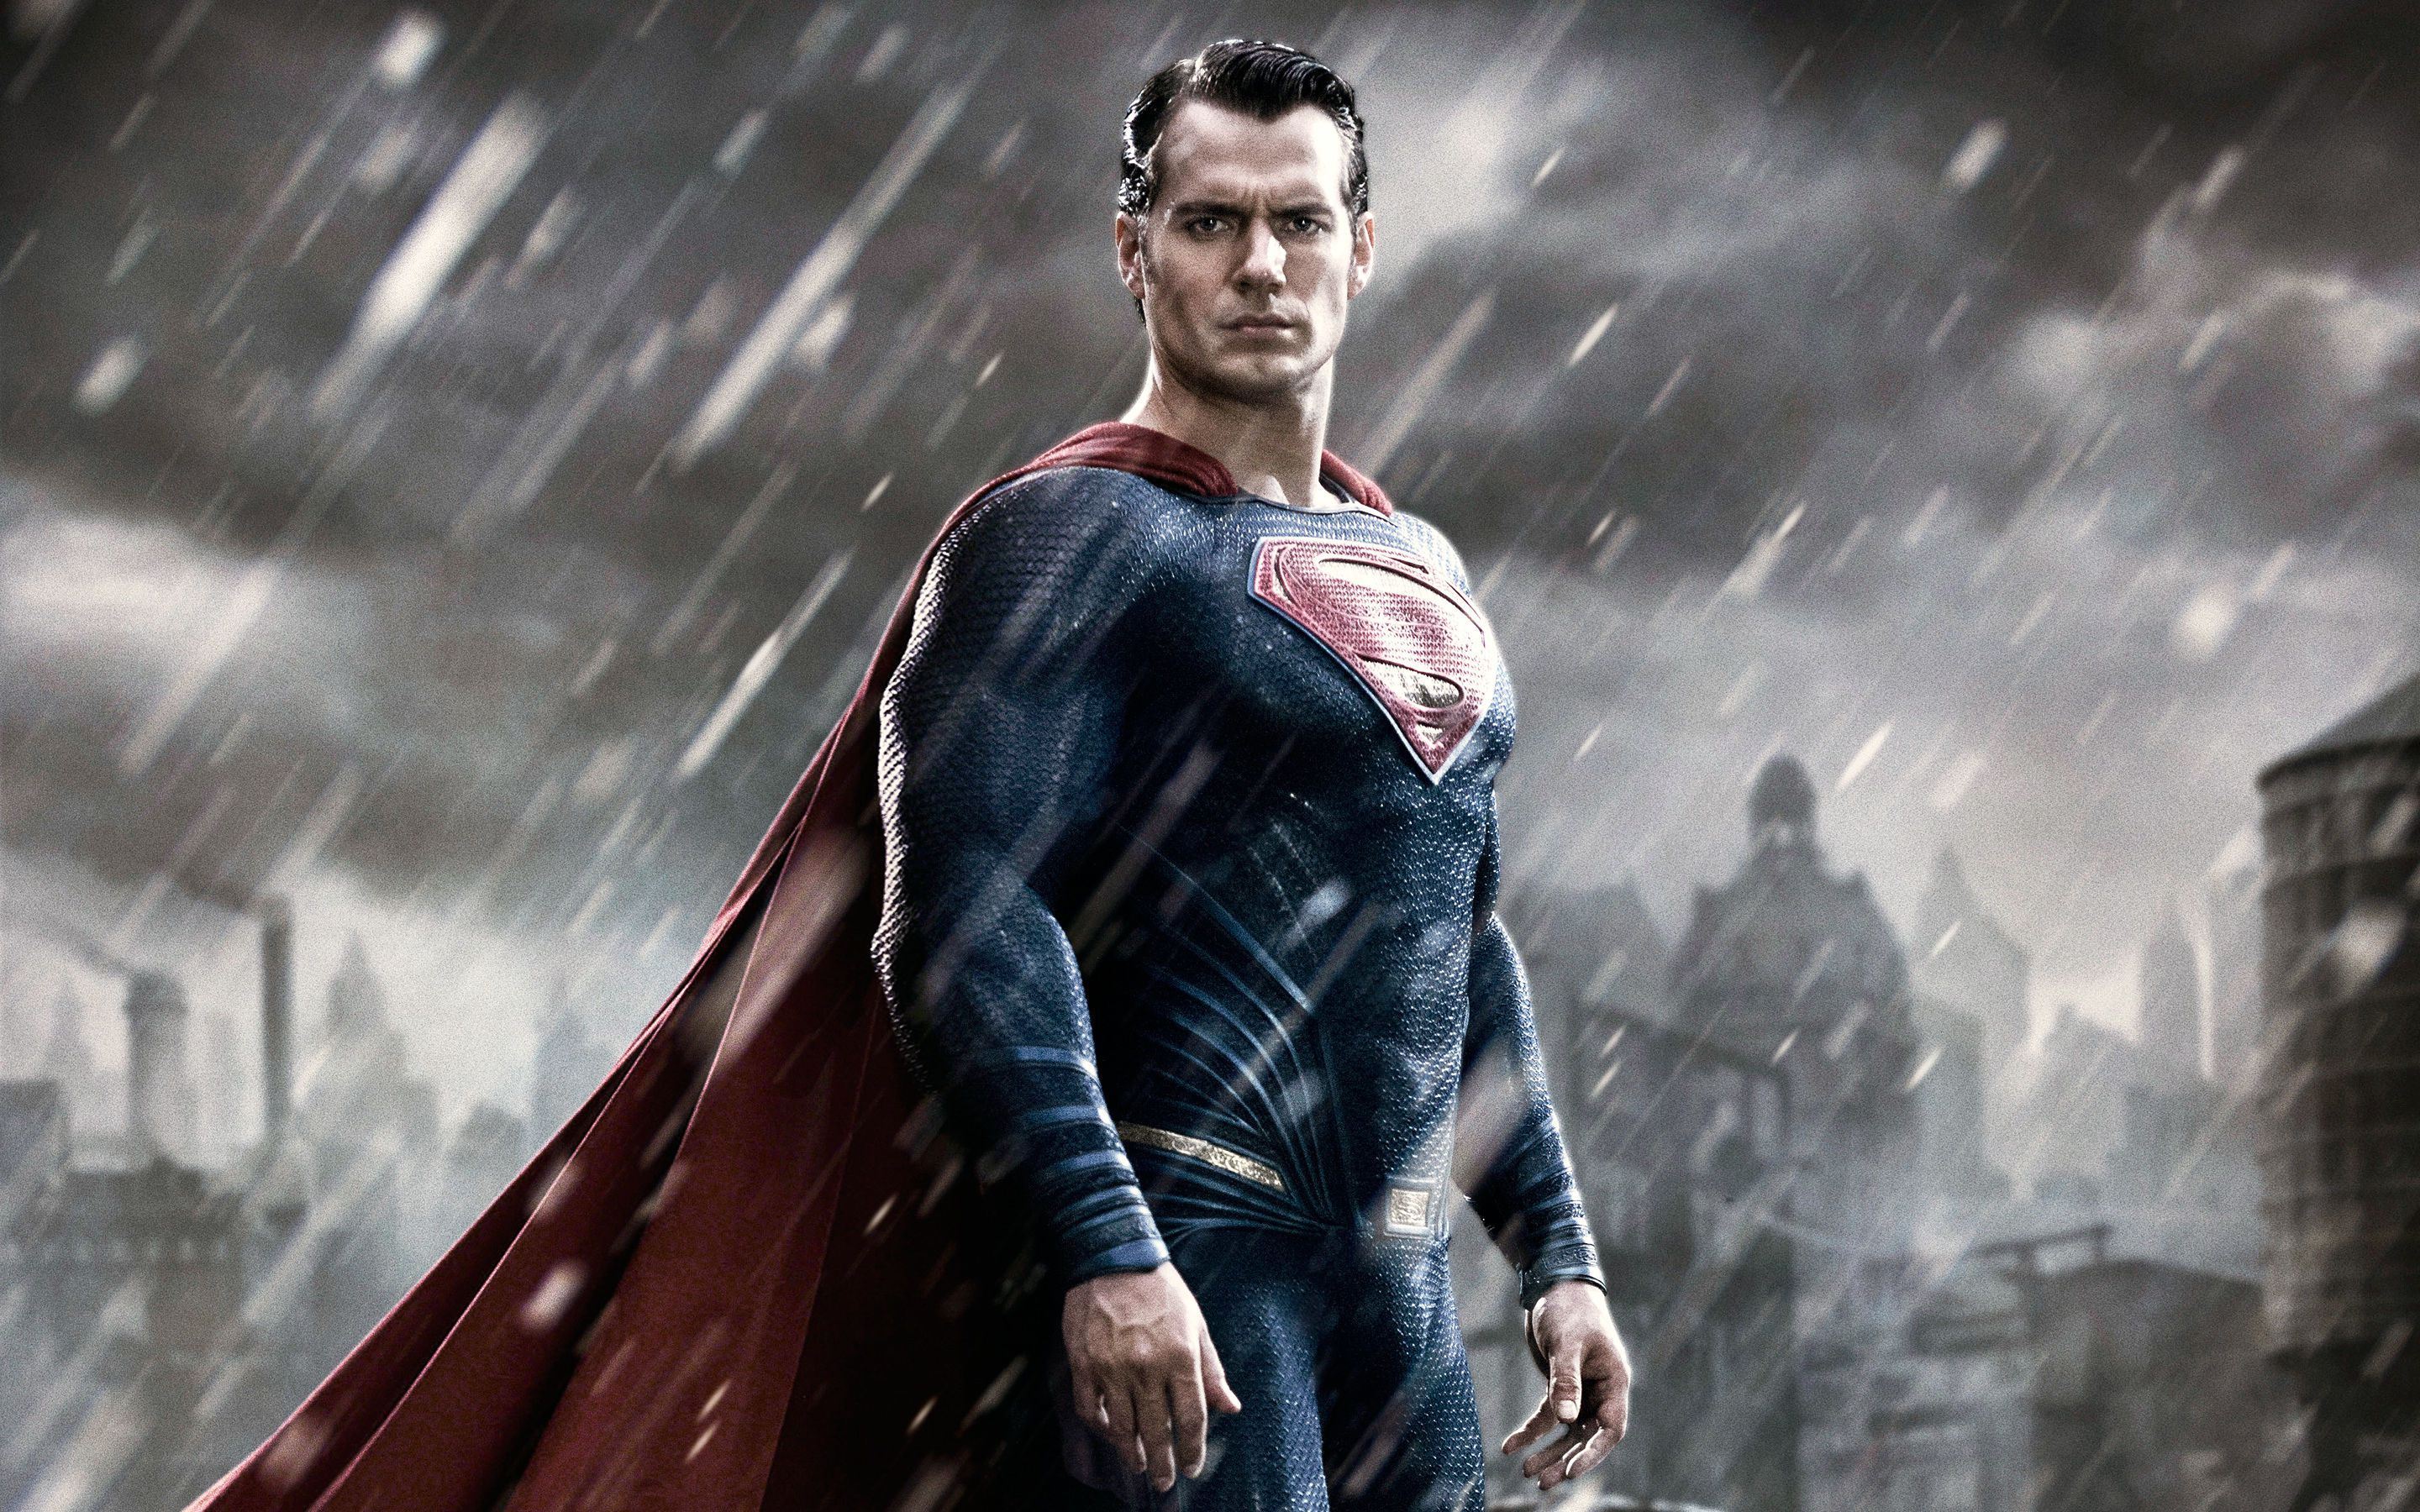 Man of Steel (2013) - Henry Cavill